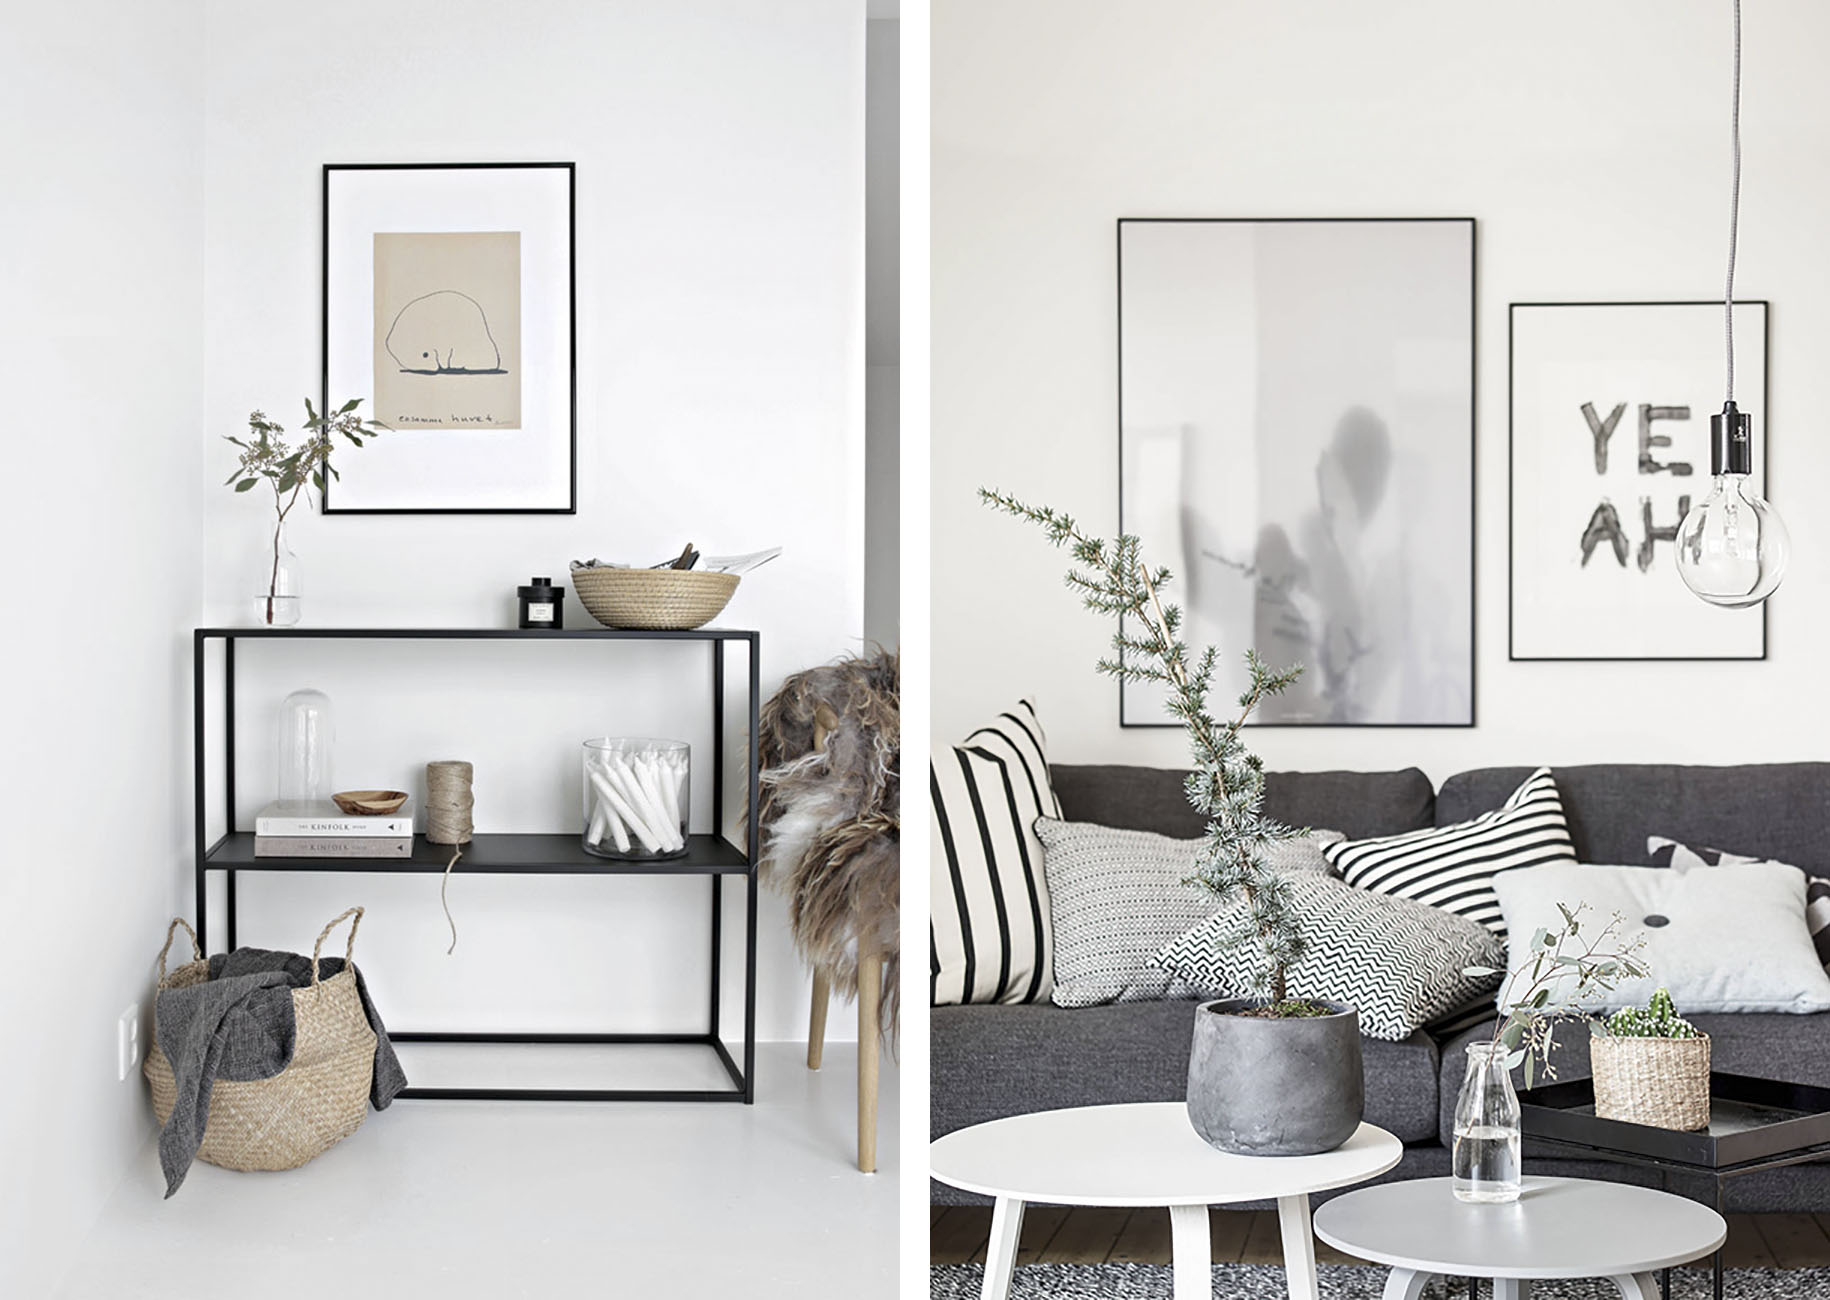 Gray Interior Design Top 10 Tips For Adding Scandinavian Style To Your Home Happy